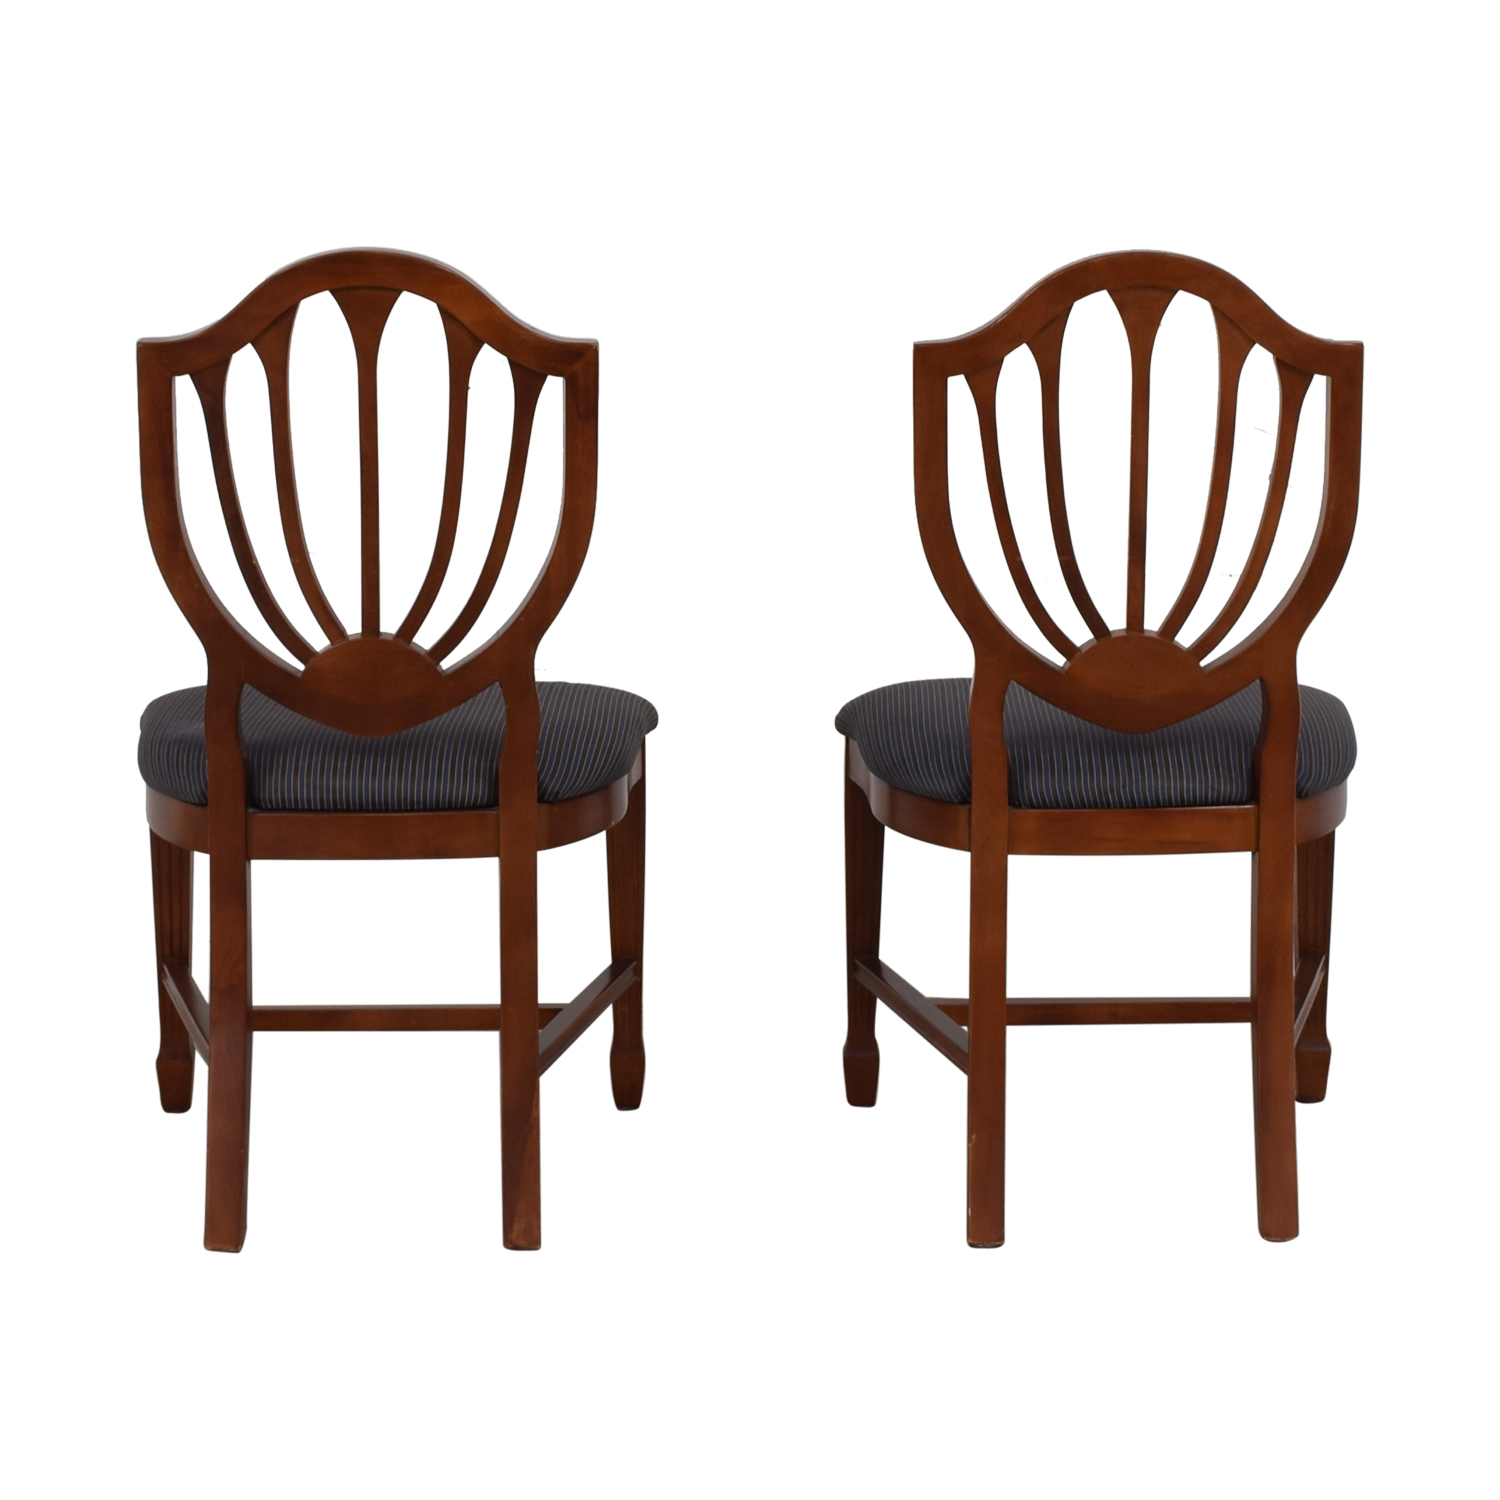 Blue Striped Upholstered Cherry Wood Accent Chairs / Chairs